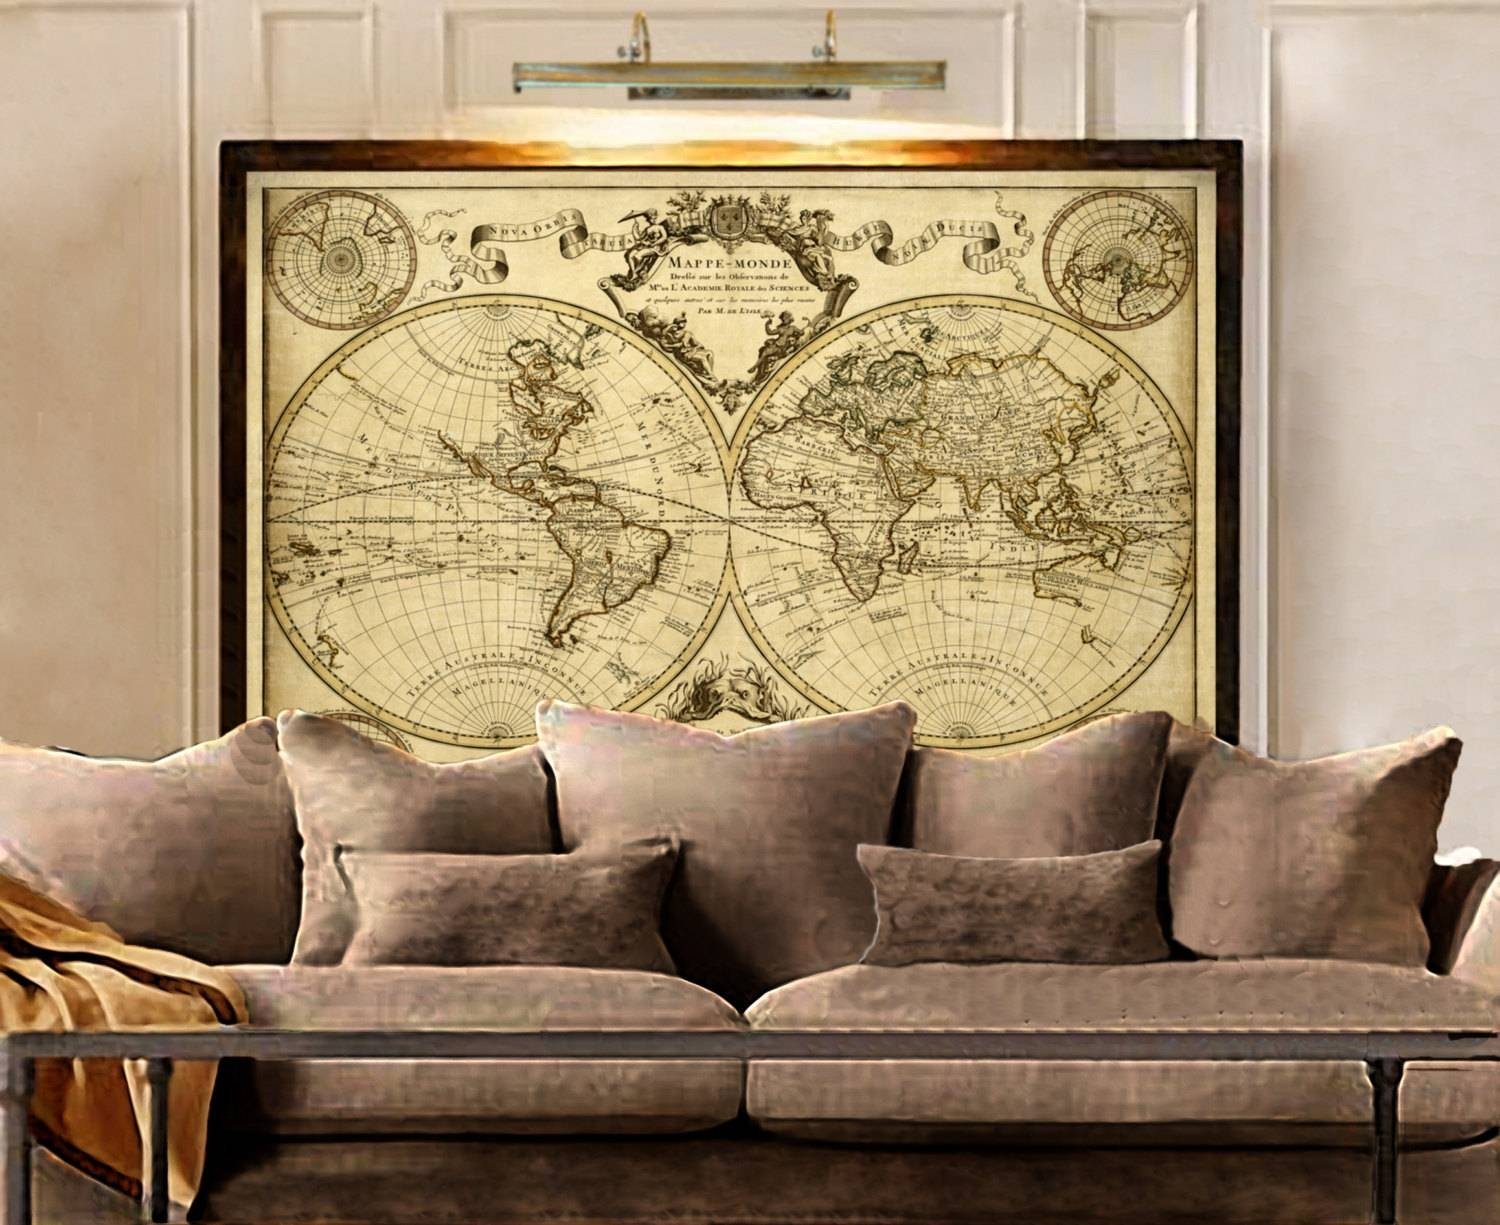 L'isle's 1720 Old World Map Historic Map Antique Style Inside Most Popular Map Wall Art (View 13 of 25)